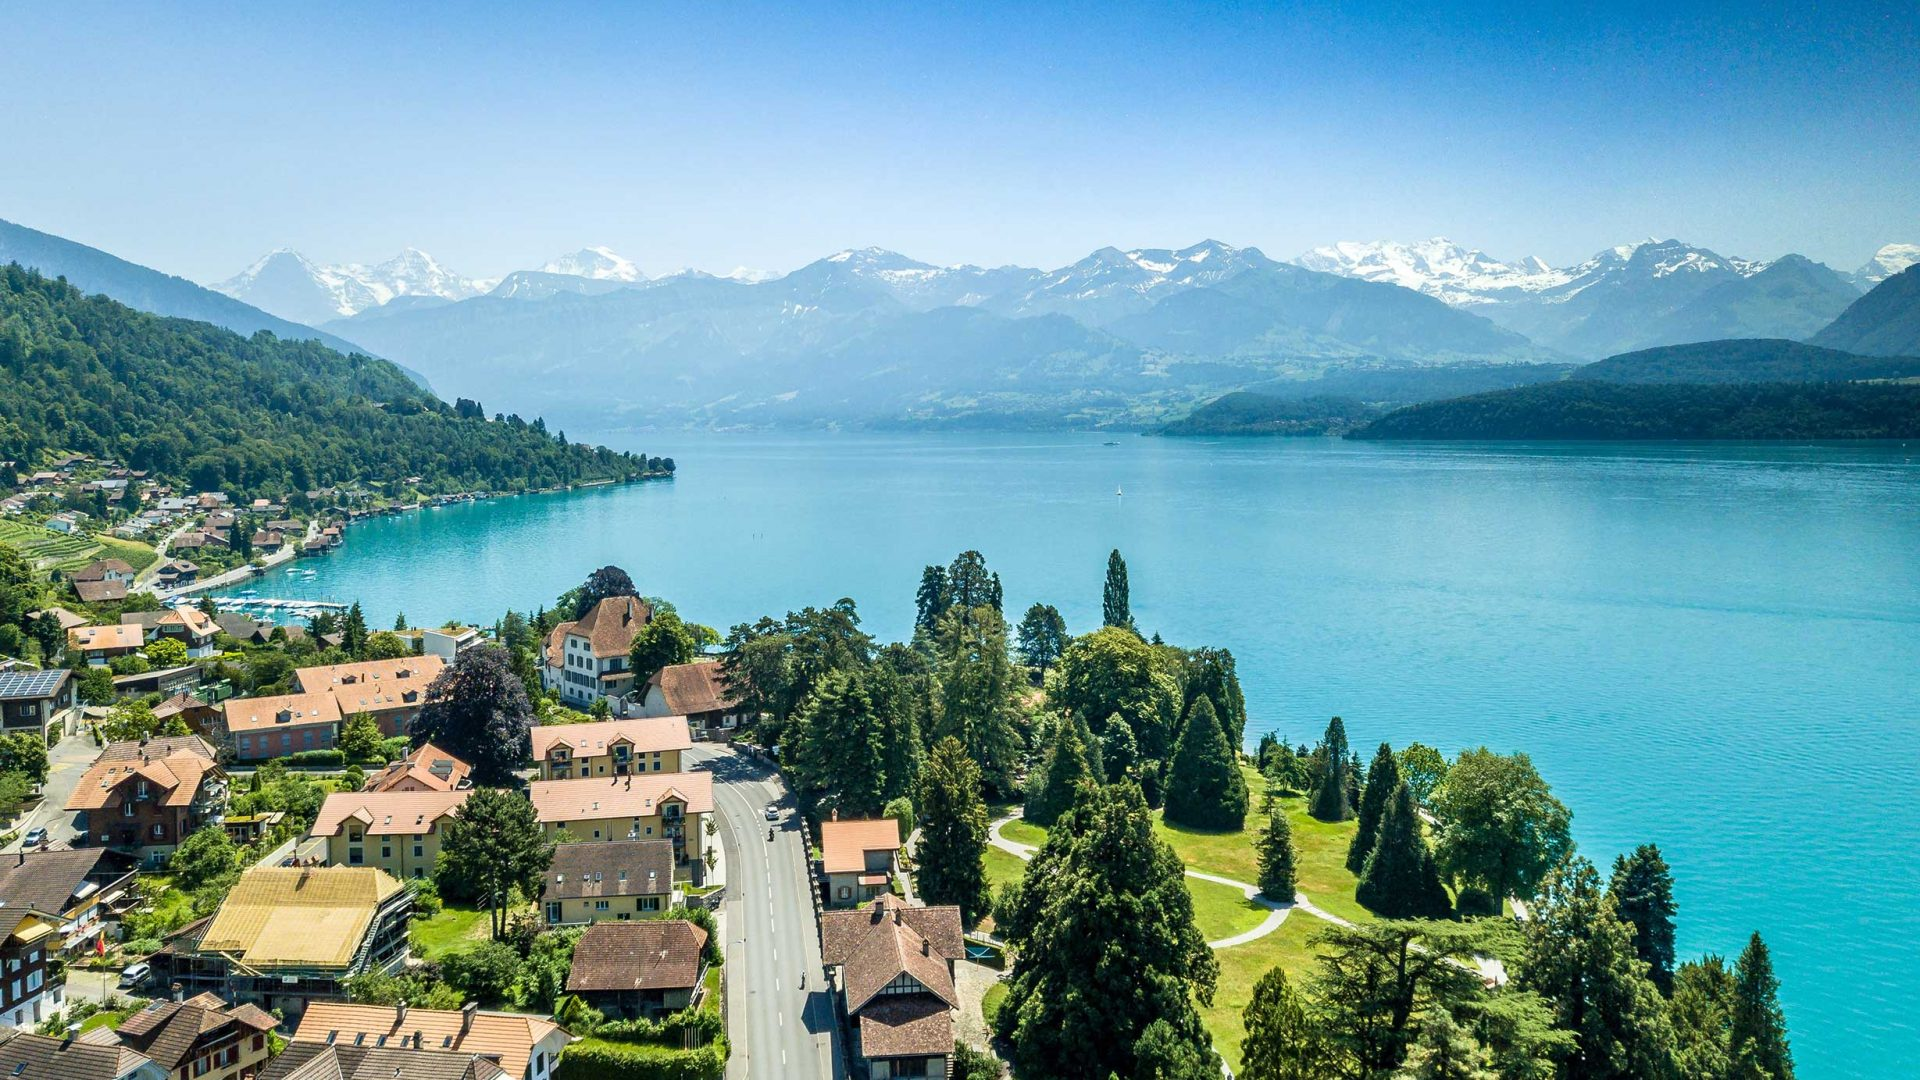 7 Reasons Travellers Want to Visit Switzerland